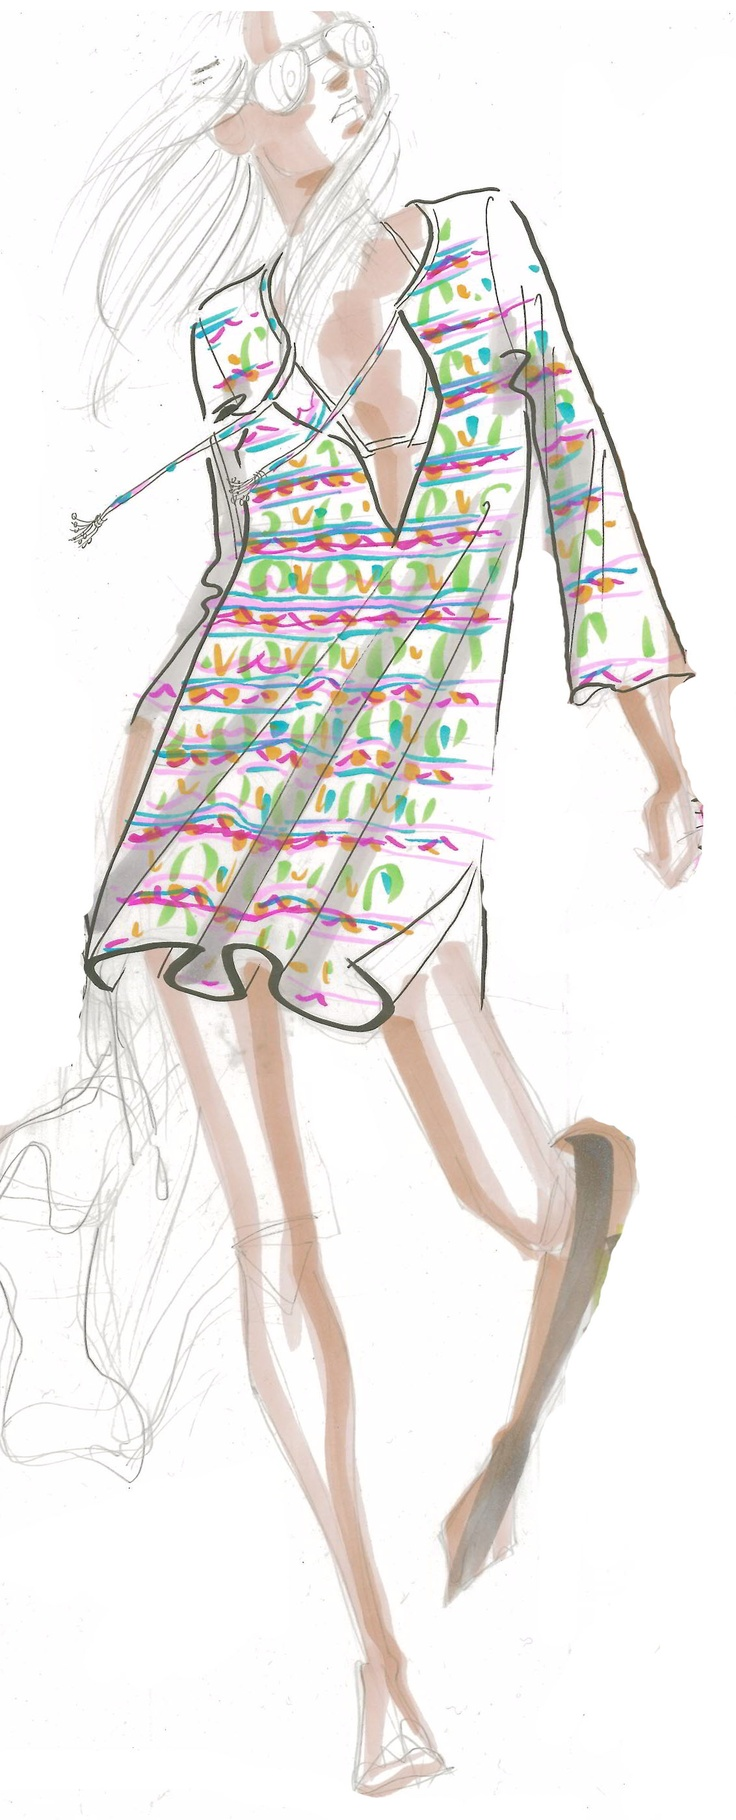 Lulu Tunic Sketch. Like the illustration, I'd rock this tunic with a pair of cool aviators too.